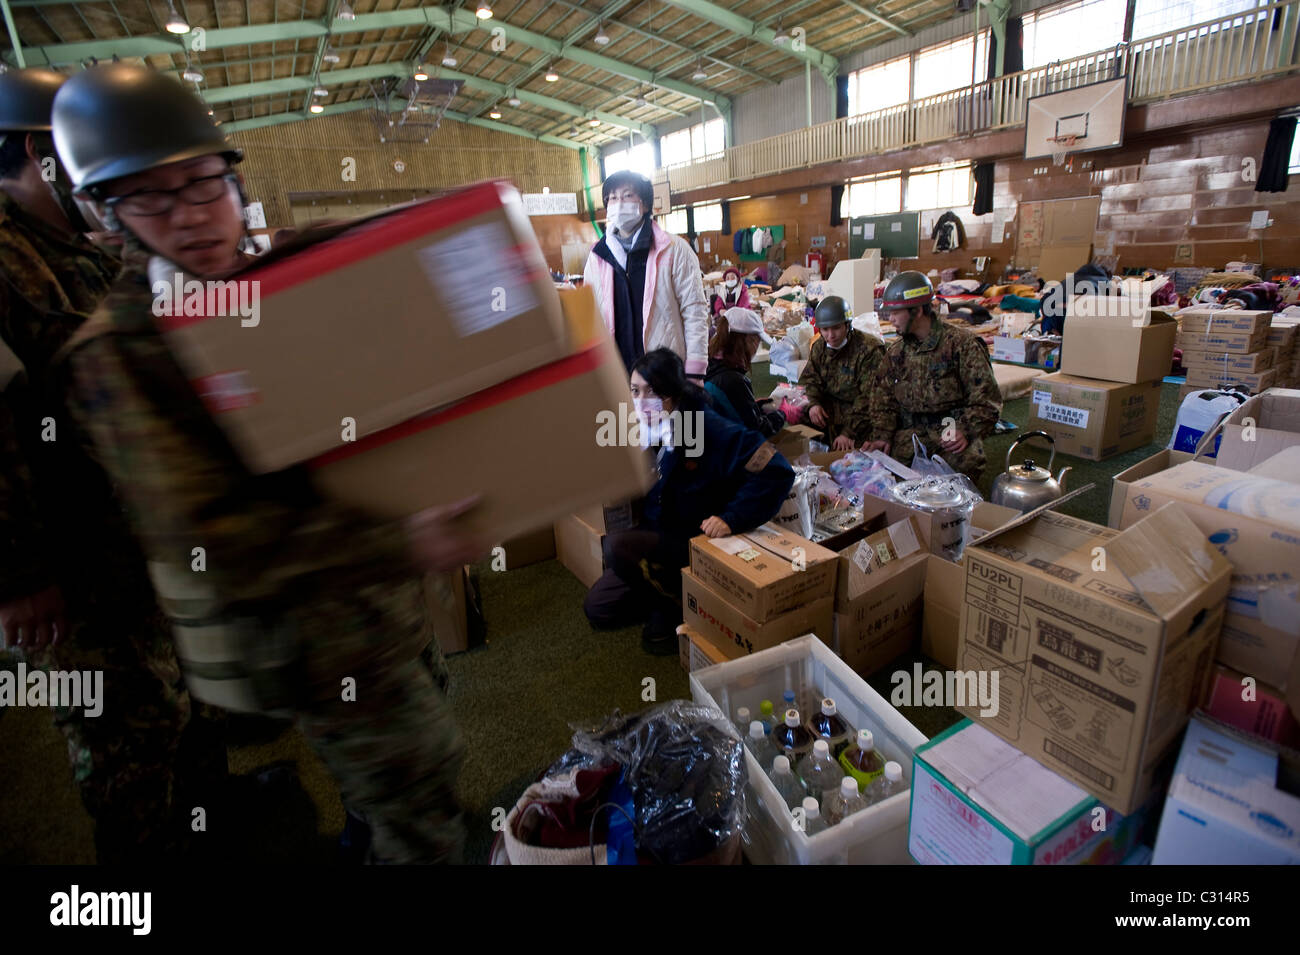 Members of Japan's Self-Defense forces deliver emergency supplies to a shelter in Kamaishi, Iwate Prefecture, - Stock Image